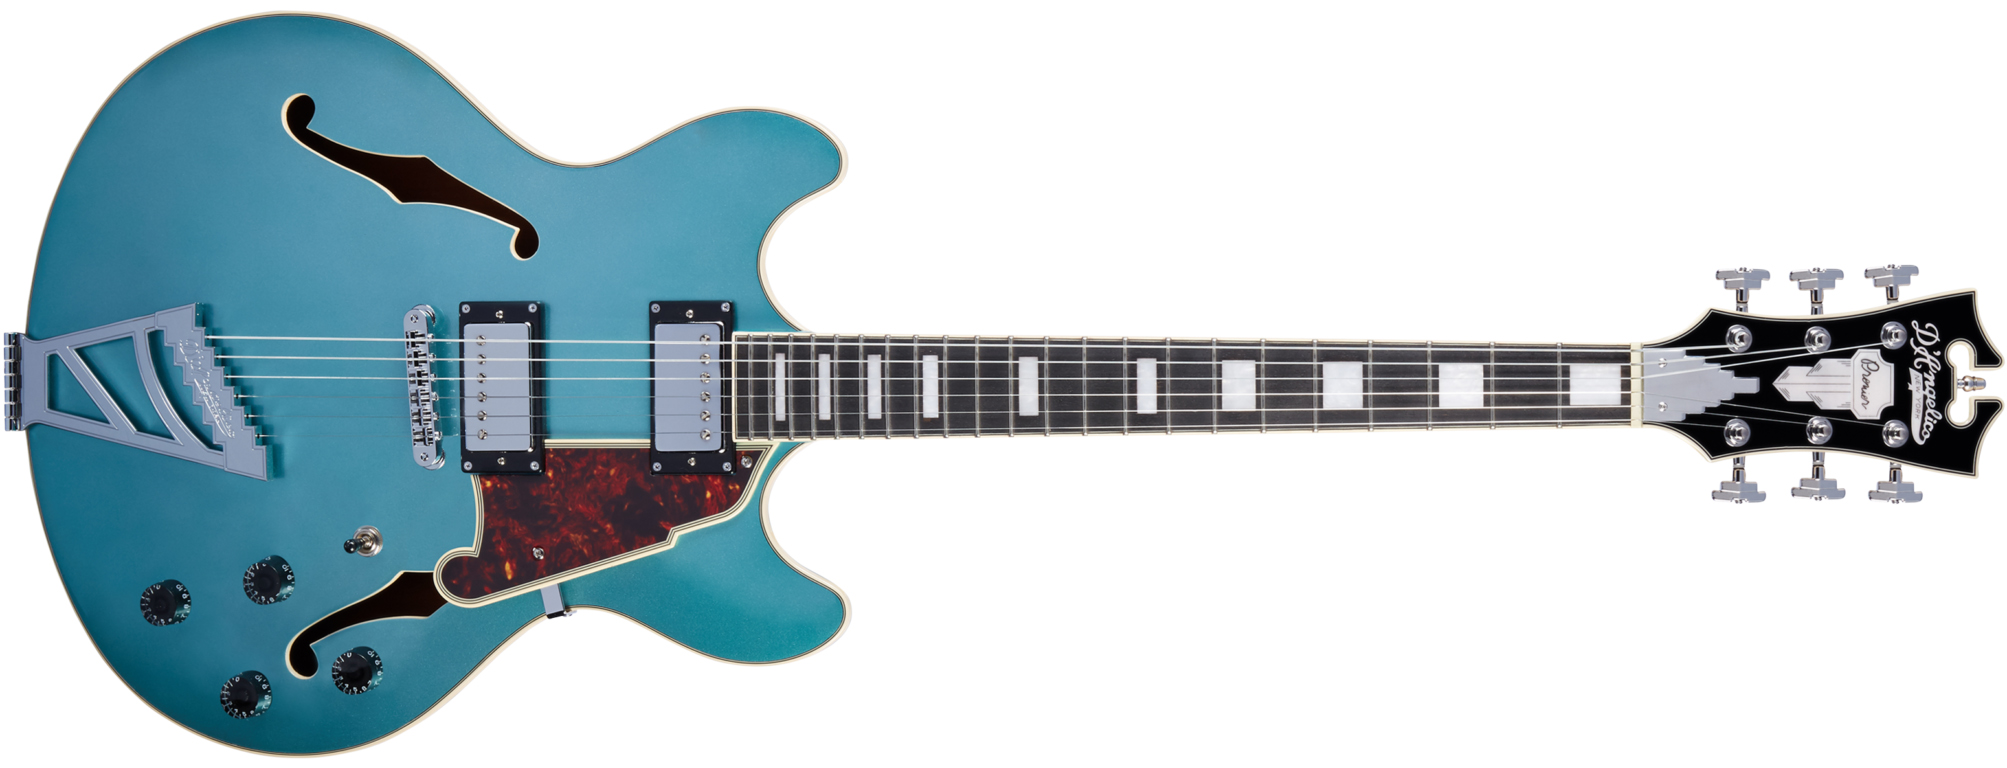 D'Angelico Premier DC Ocean Turquoise (2018)_01